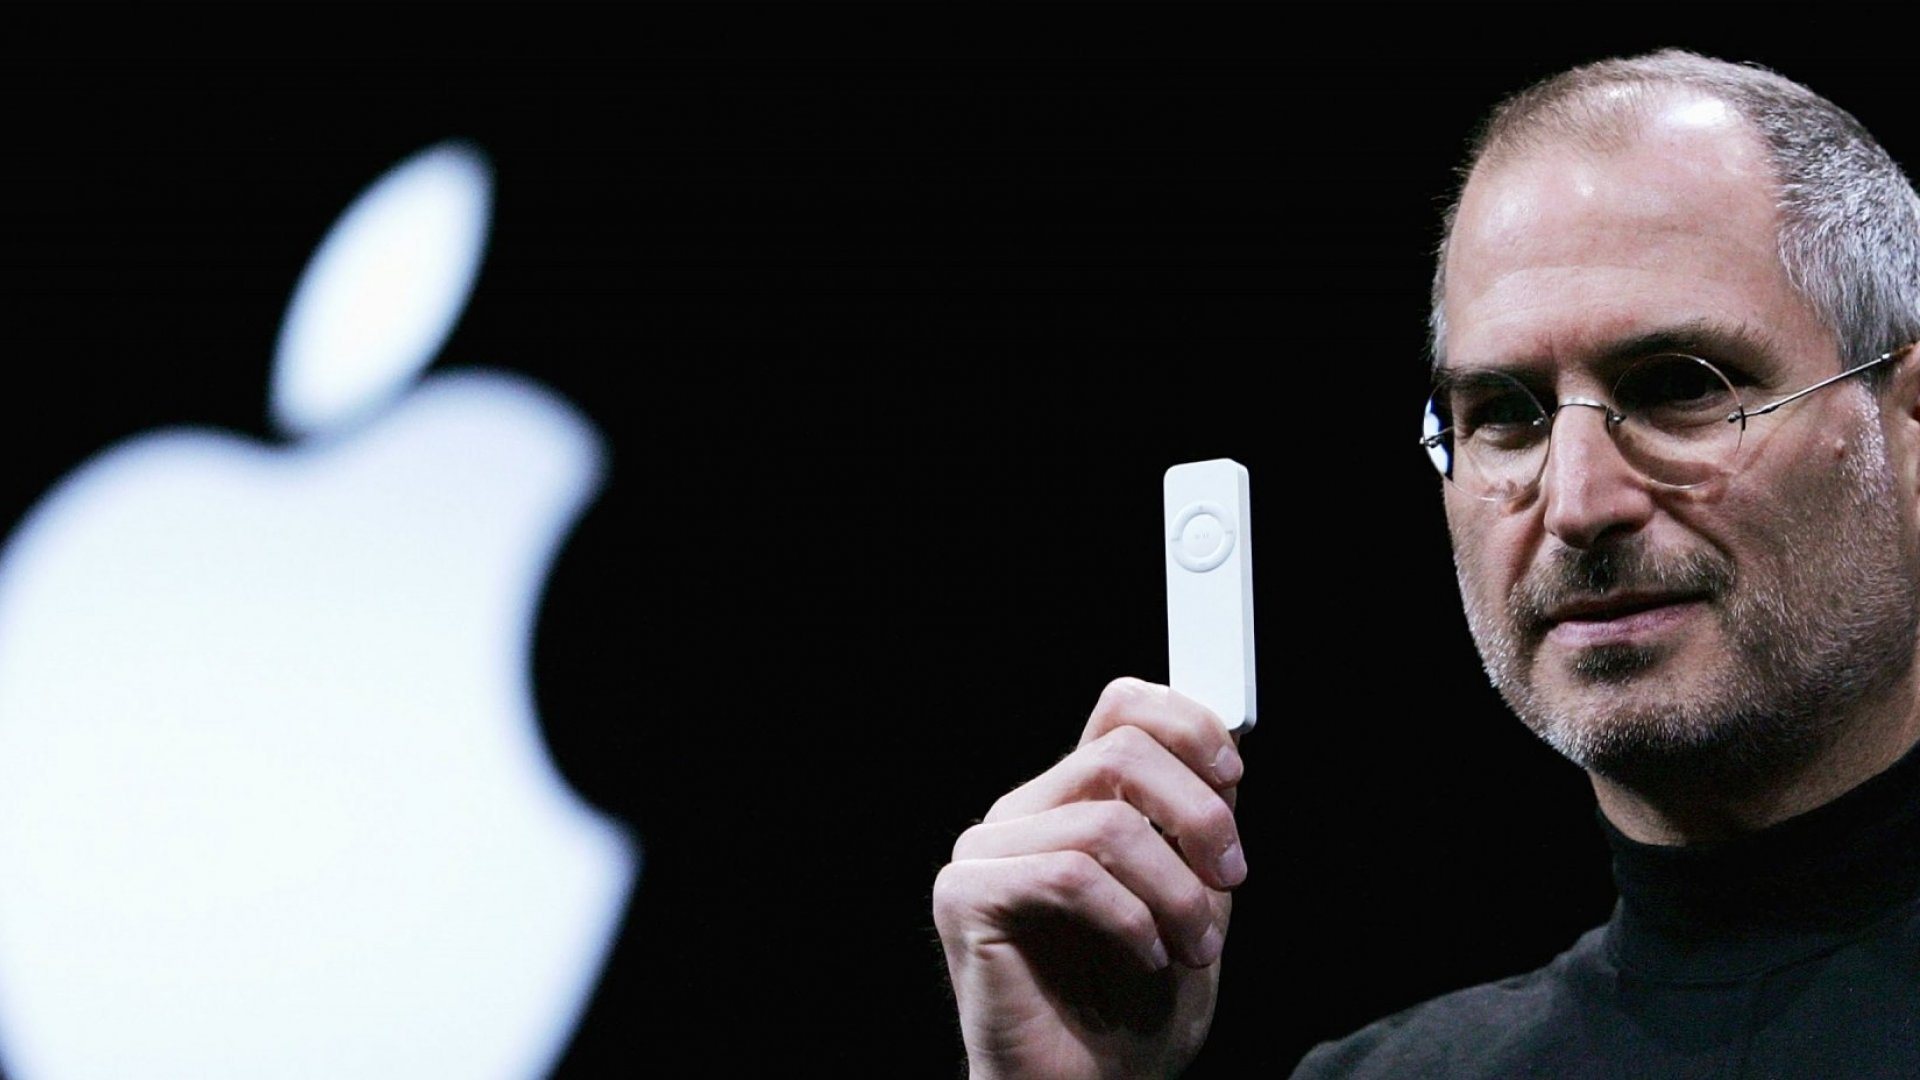 Former Apple CEO Steve Jobs holds a new iPod shuffle MP3 player at the 2005 Macworld Expo January 11, 2005 in San Francisco, California.